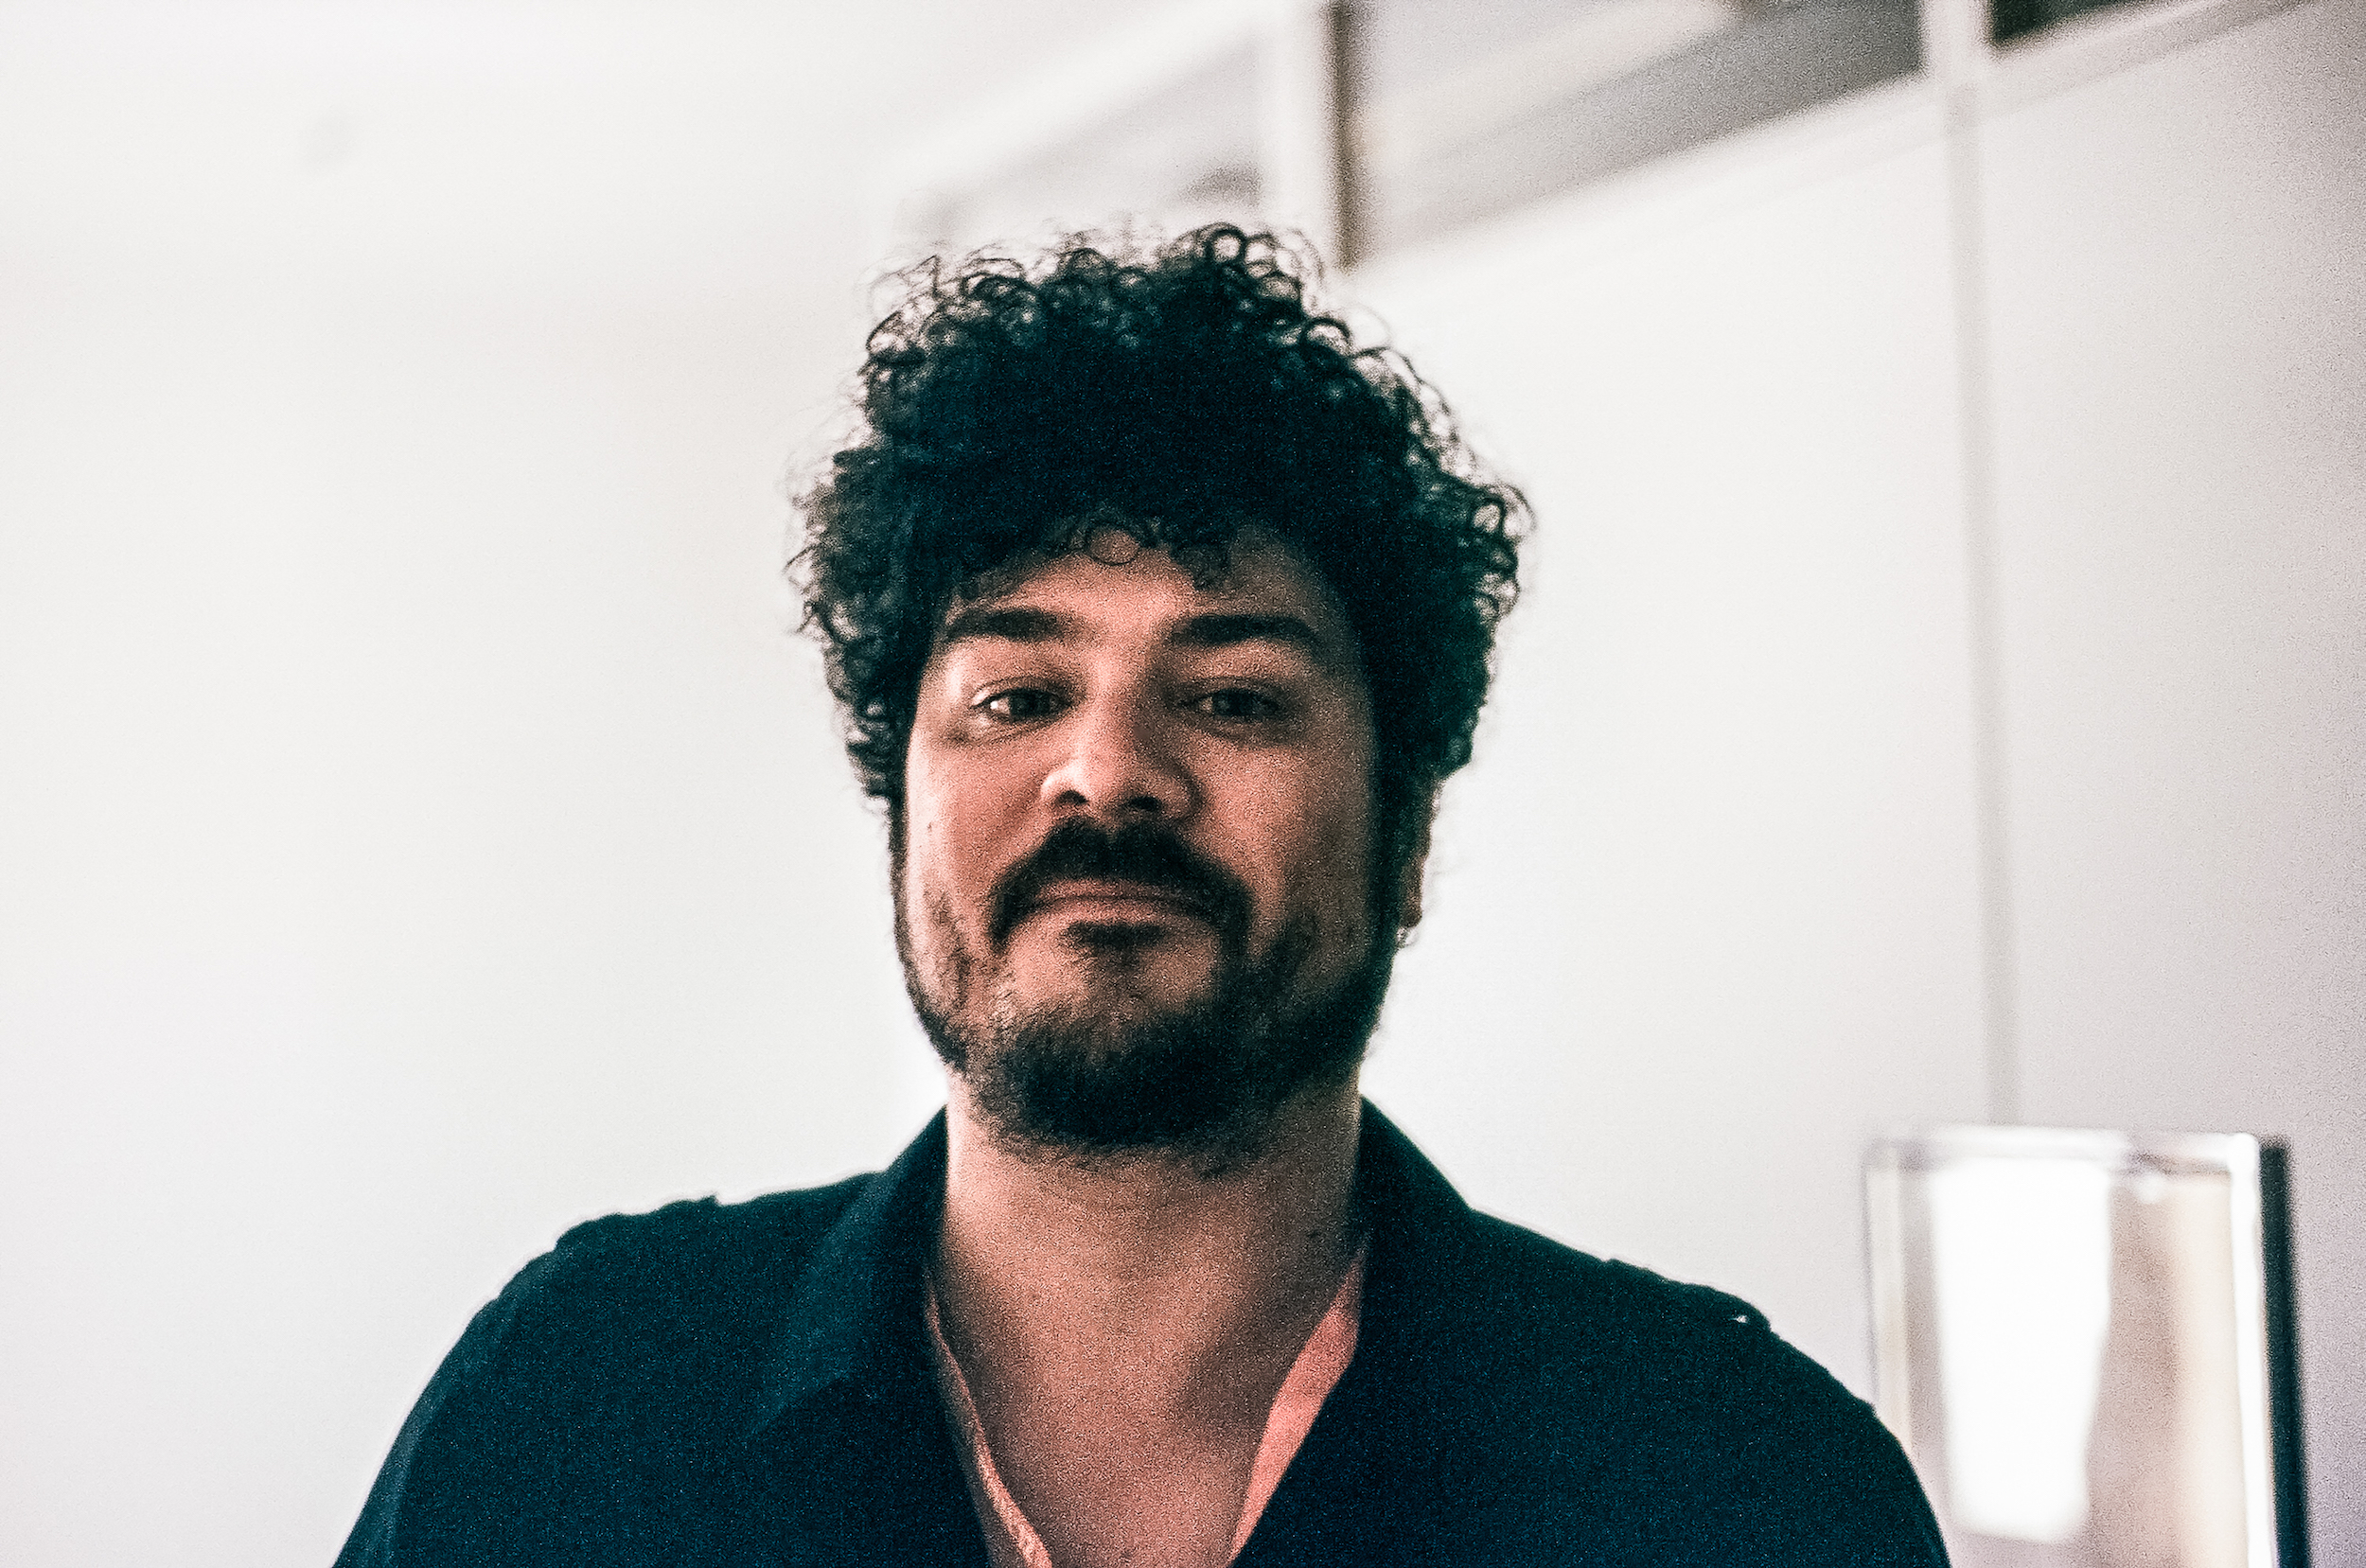 Richard Swift Shines With Posthumous Psych-Soul LP 'The Hex' (ALBUM REVIEW)